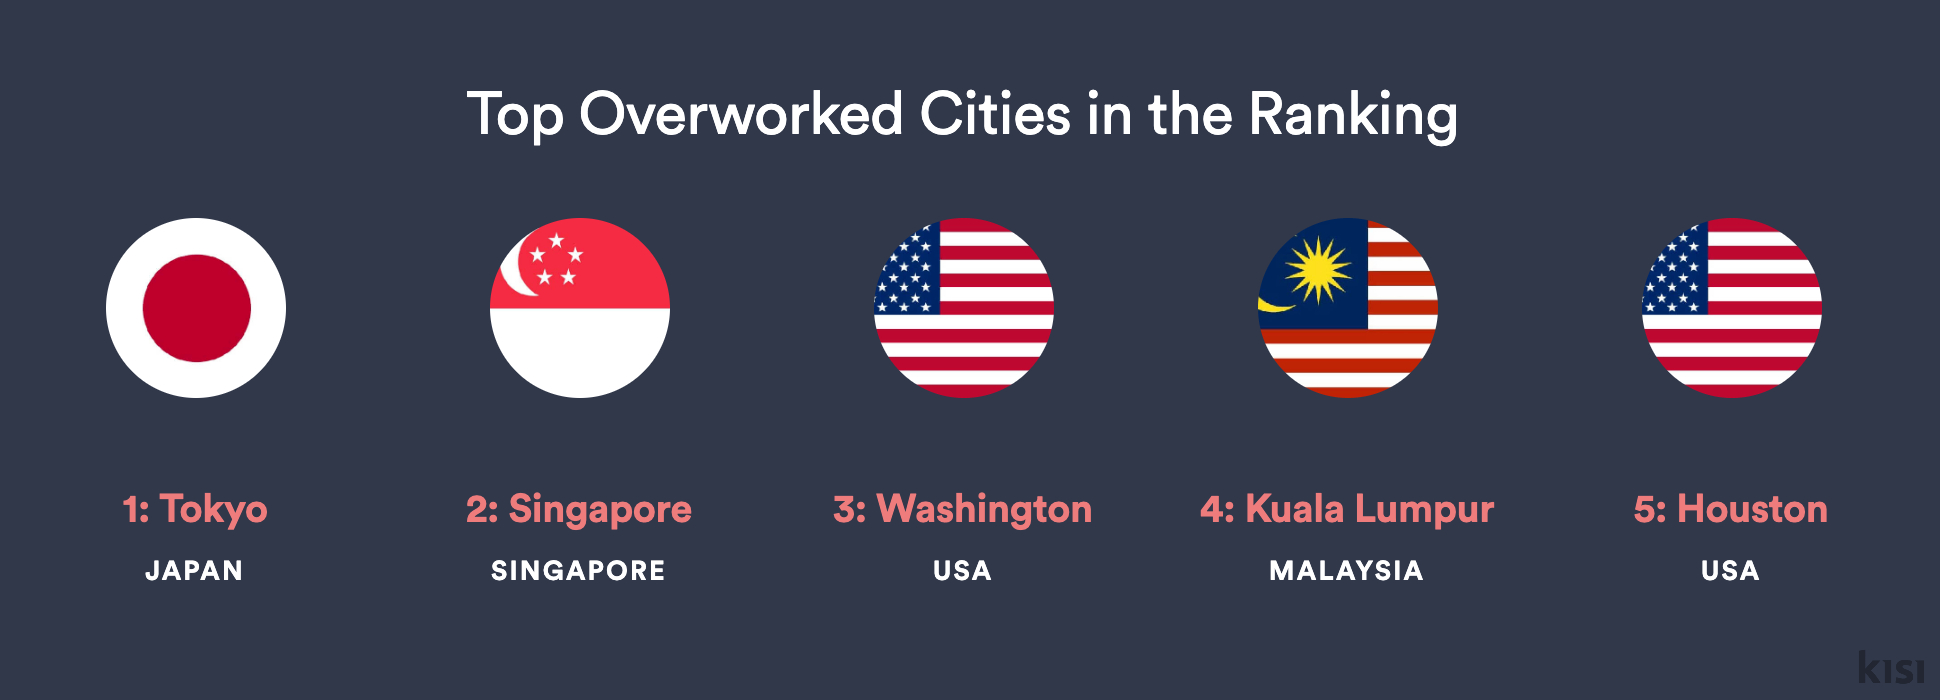 Tokyo, Singapore, and Kuala Lumpur Are in the Top Five Most Overworked Cities on Earth